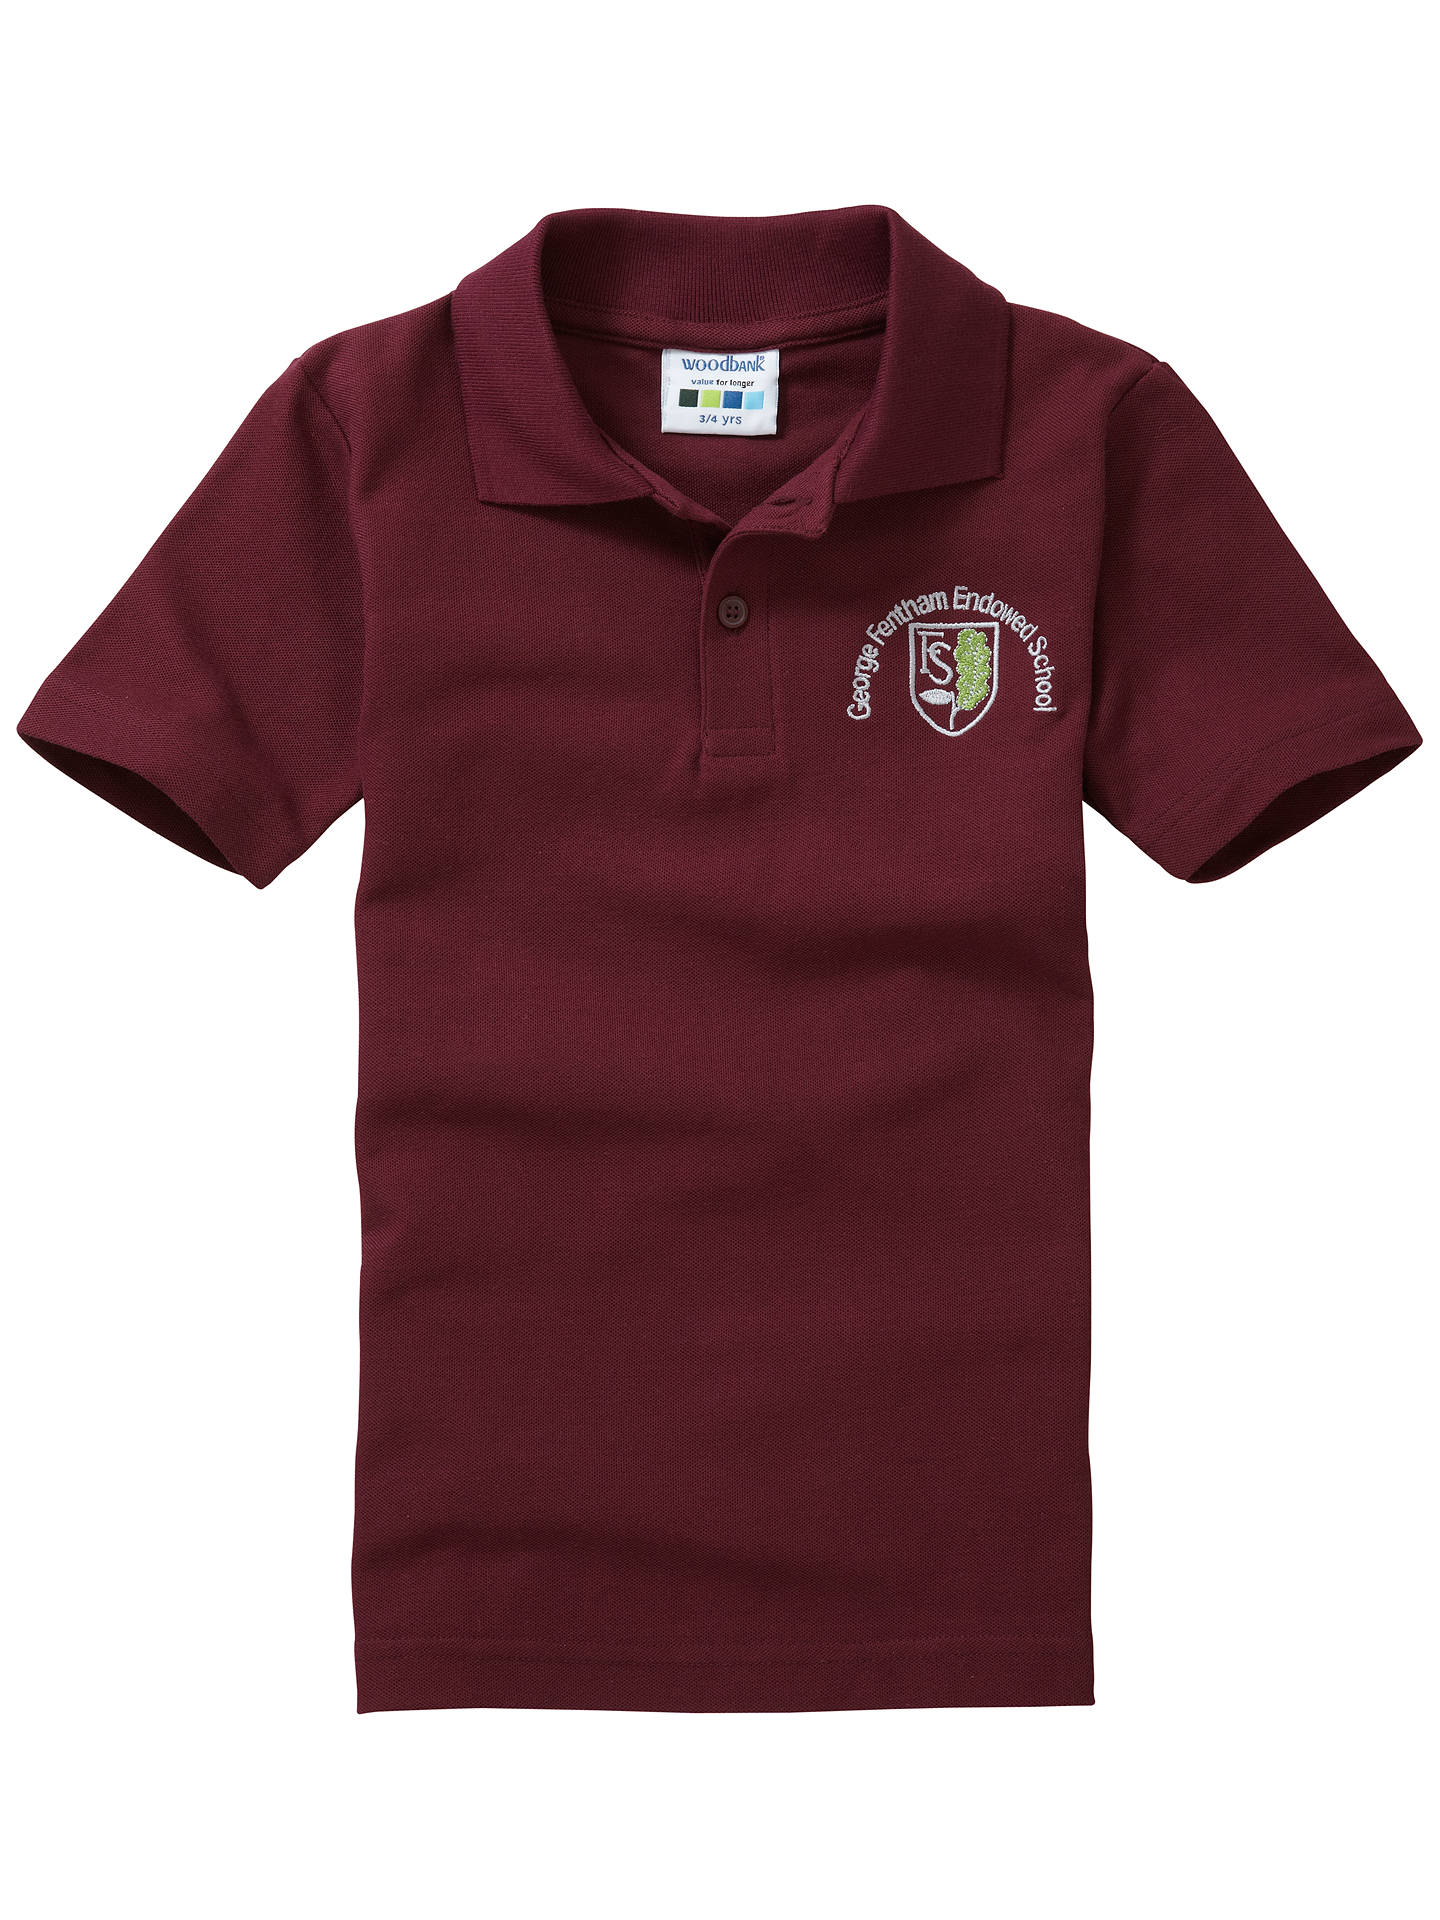 BuyGeorge Fentham Endowed School Unisex Polo Shirt, Maroon, Age 11/12 Online at johnlewis.com